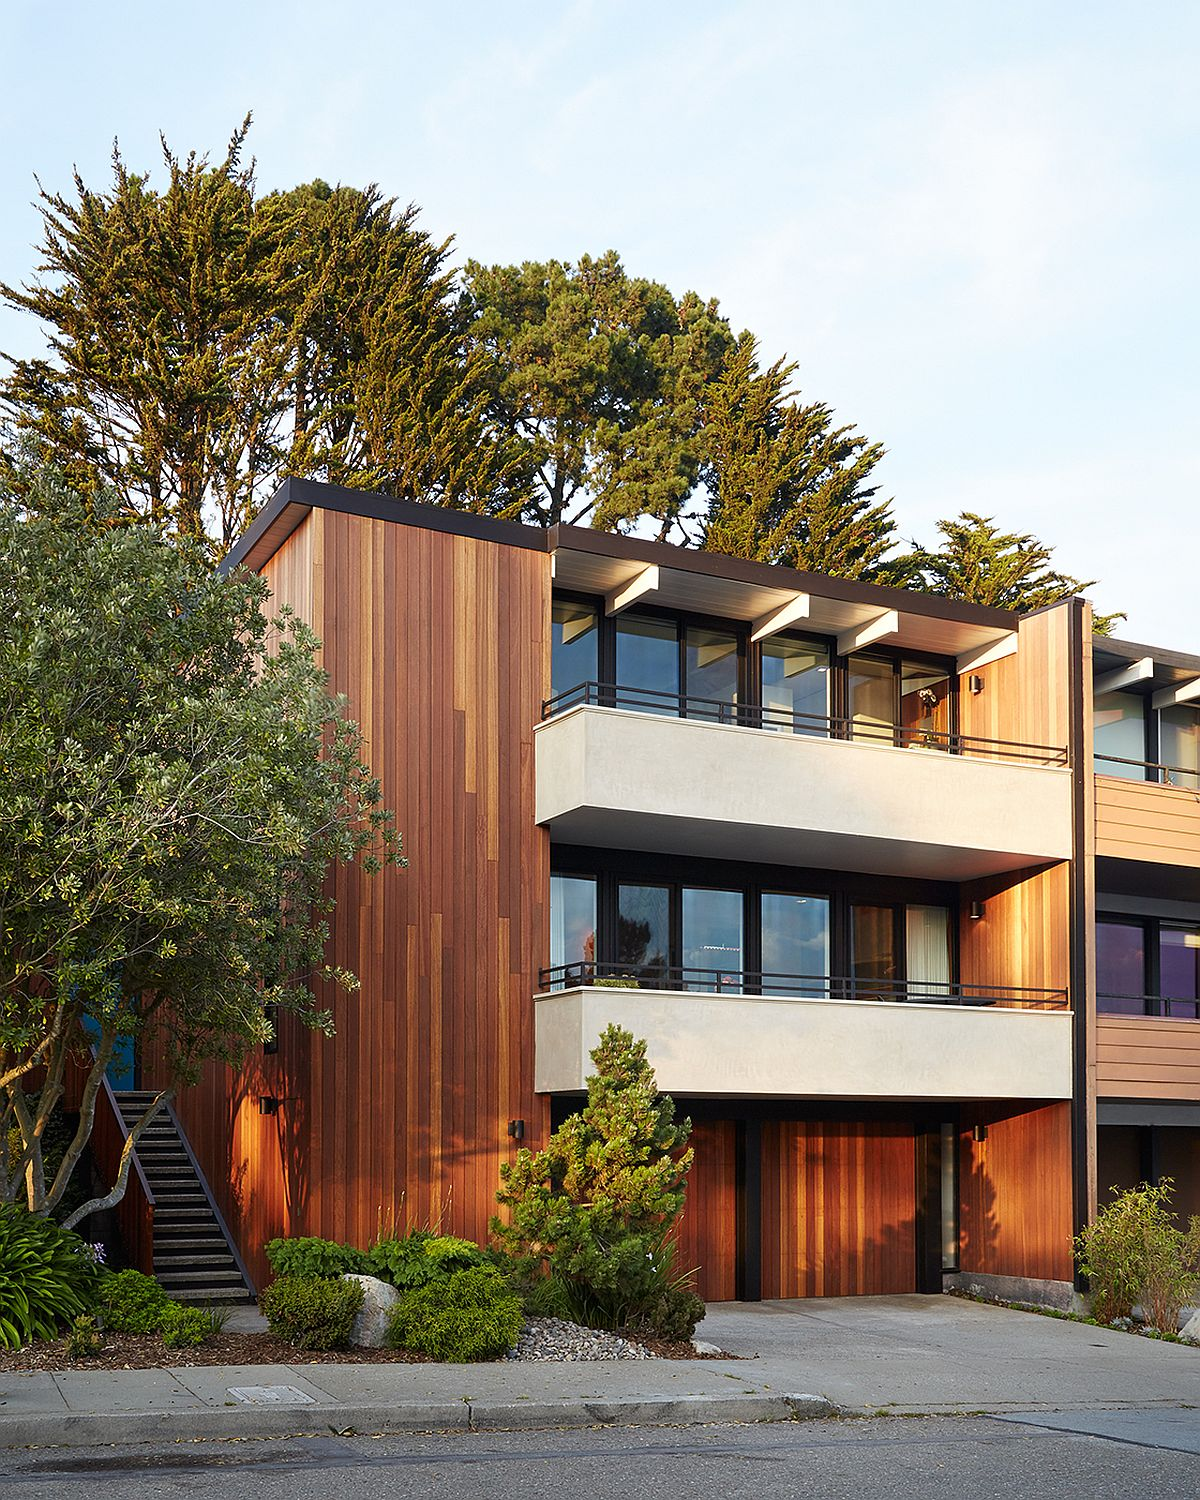 Kayu Batu wood siding is used to revitalize and give the classic Eichler Residence a new look White and Mahogany Palette Revitalizes 1962 Eichler Home in San Francisco